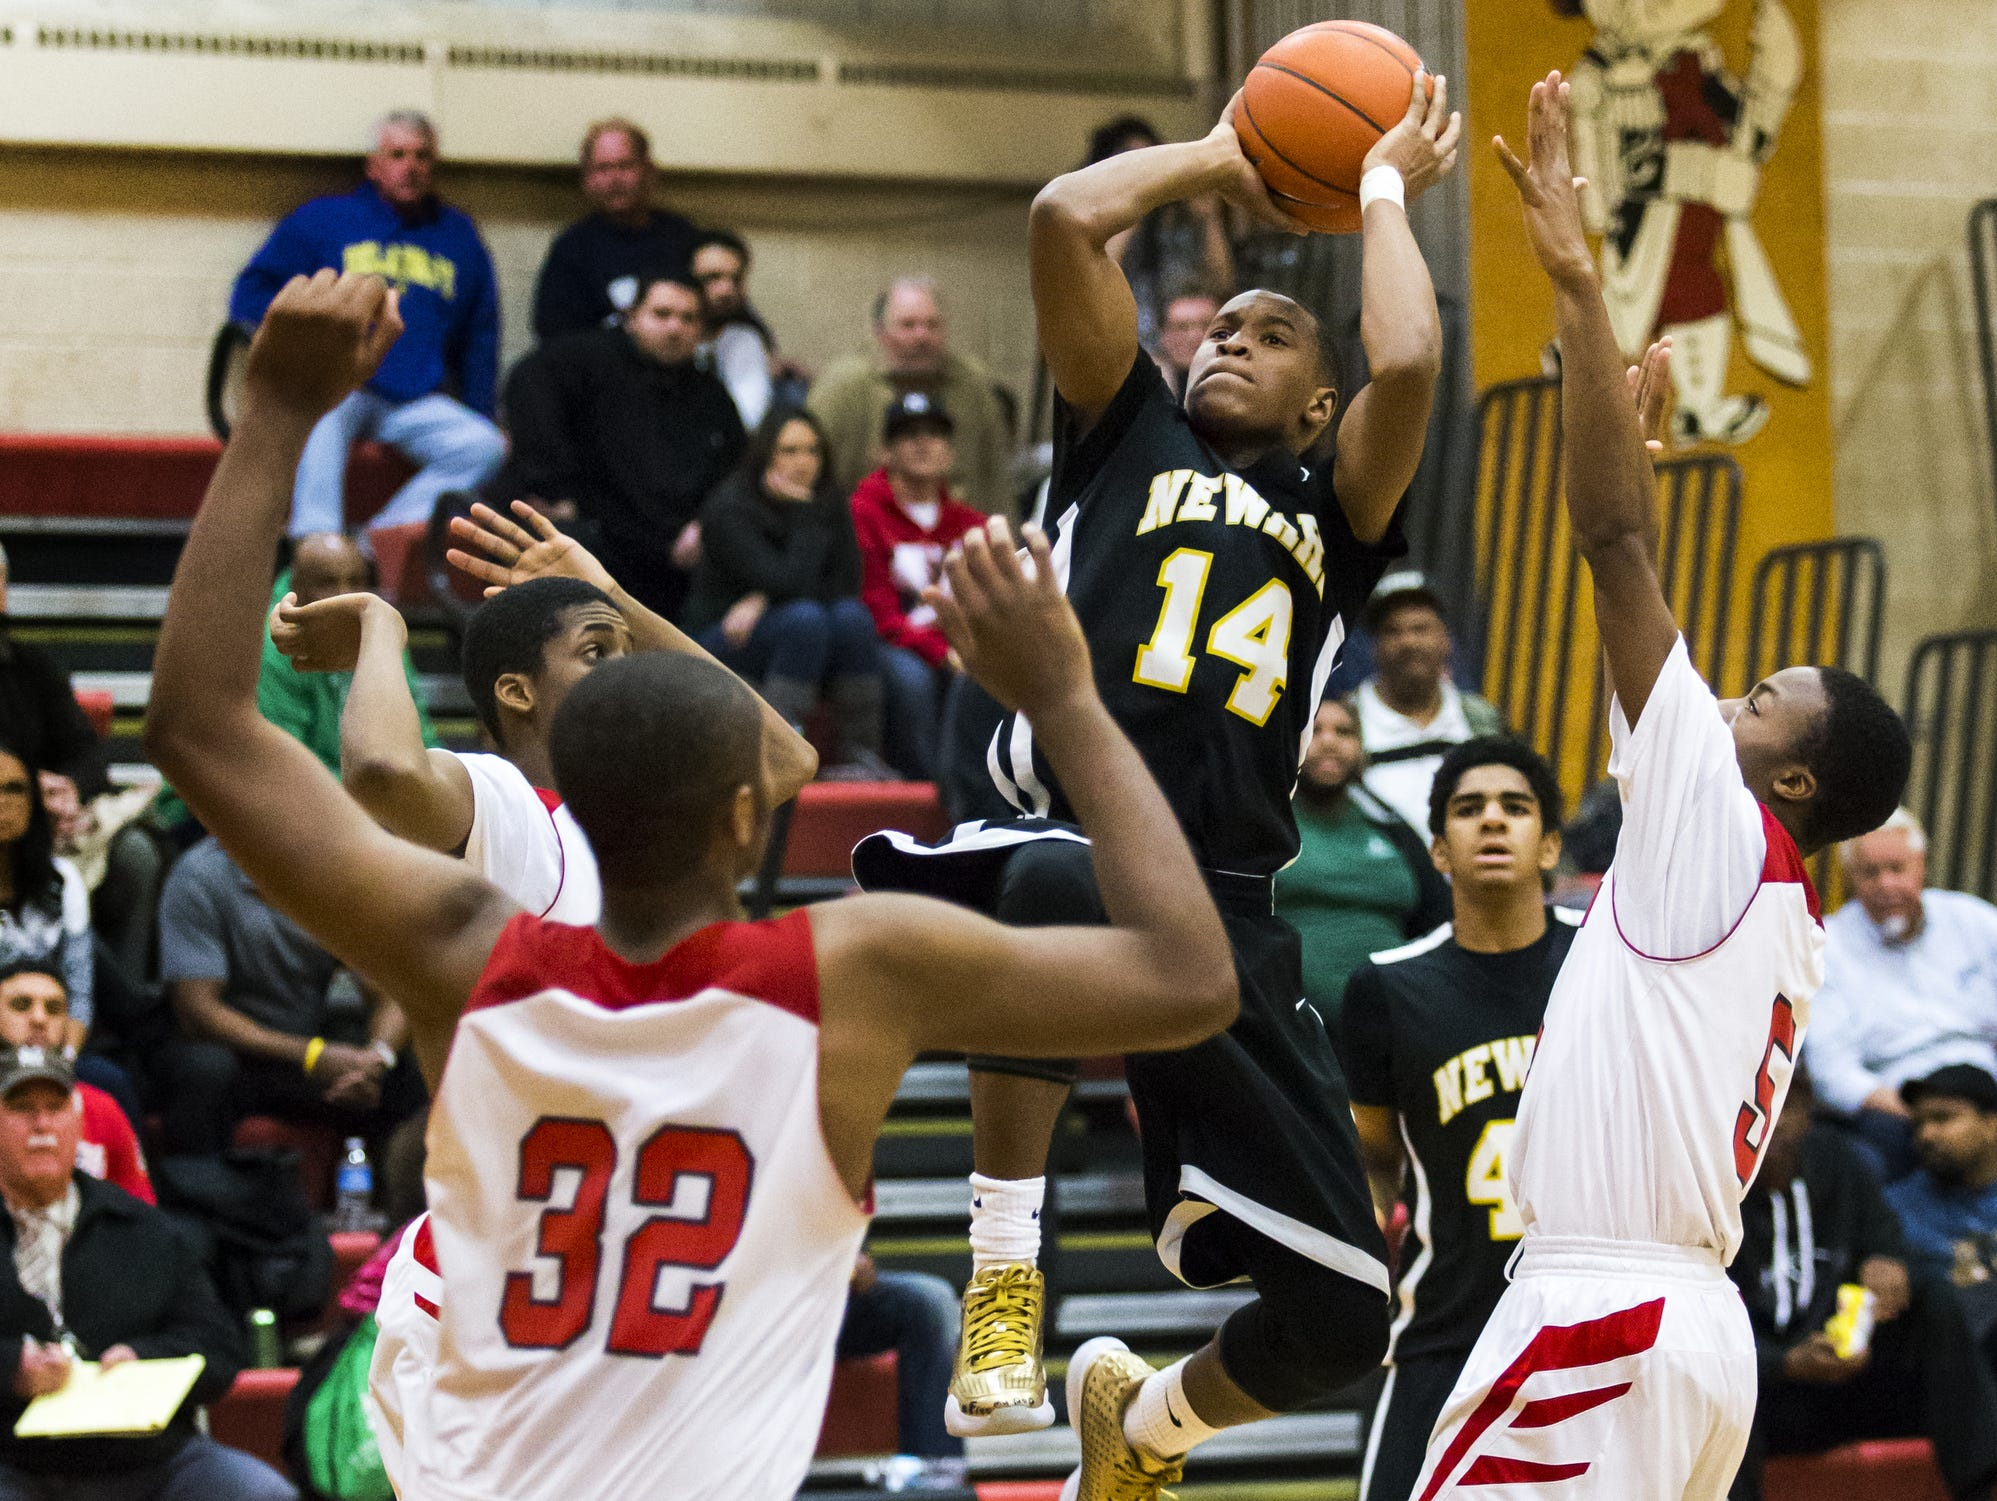 Newark's Michael Drumgo-Sharpe puts up a shot through a group of William Penn defenders in the second half of William Penn's 47-28 win over Newark at William Penn High School on Thursday night.